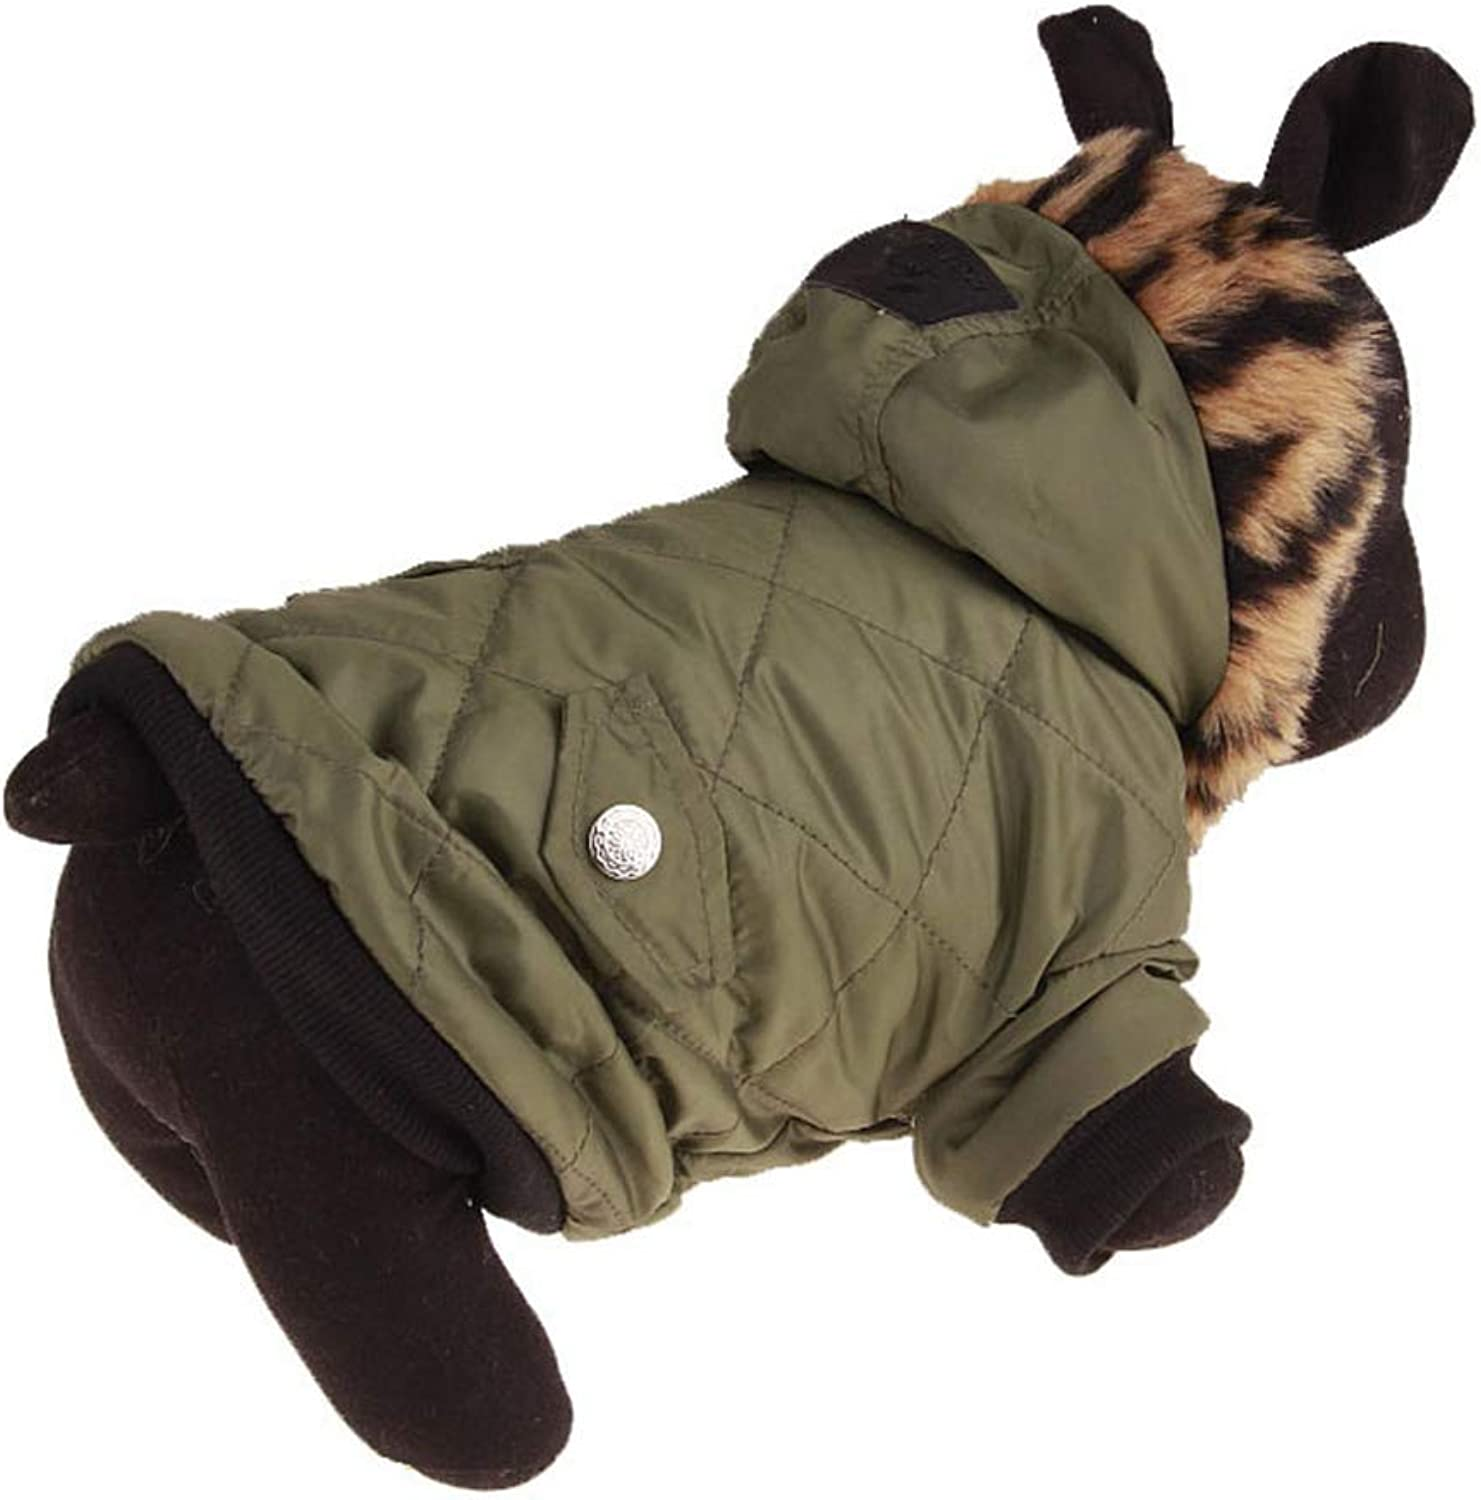 PETFDH Autumn Winter Clothes for Dogs Army Green Pet Coat for Small Dogs Puppy Overcoat Pet Dog Clothes Jackets Fur Collar Pet Costumes Army Green XS